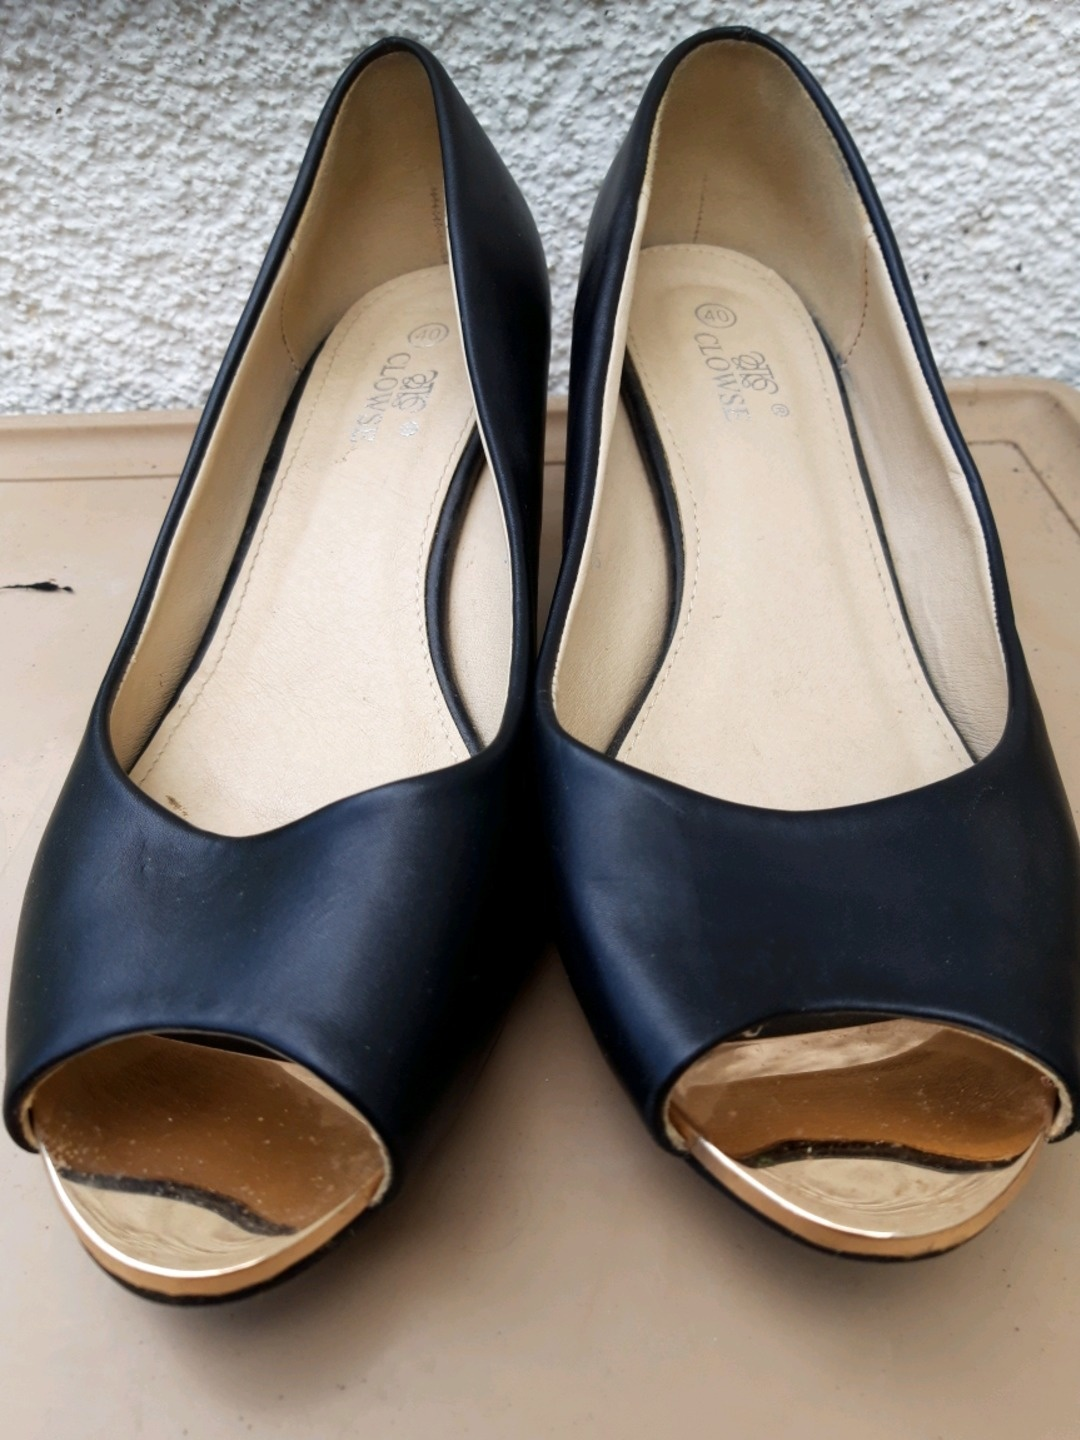 Women's heels & dress shoes - VINTAGE photo 1